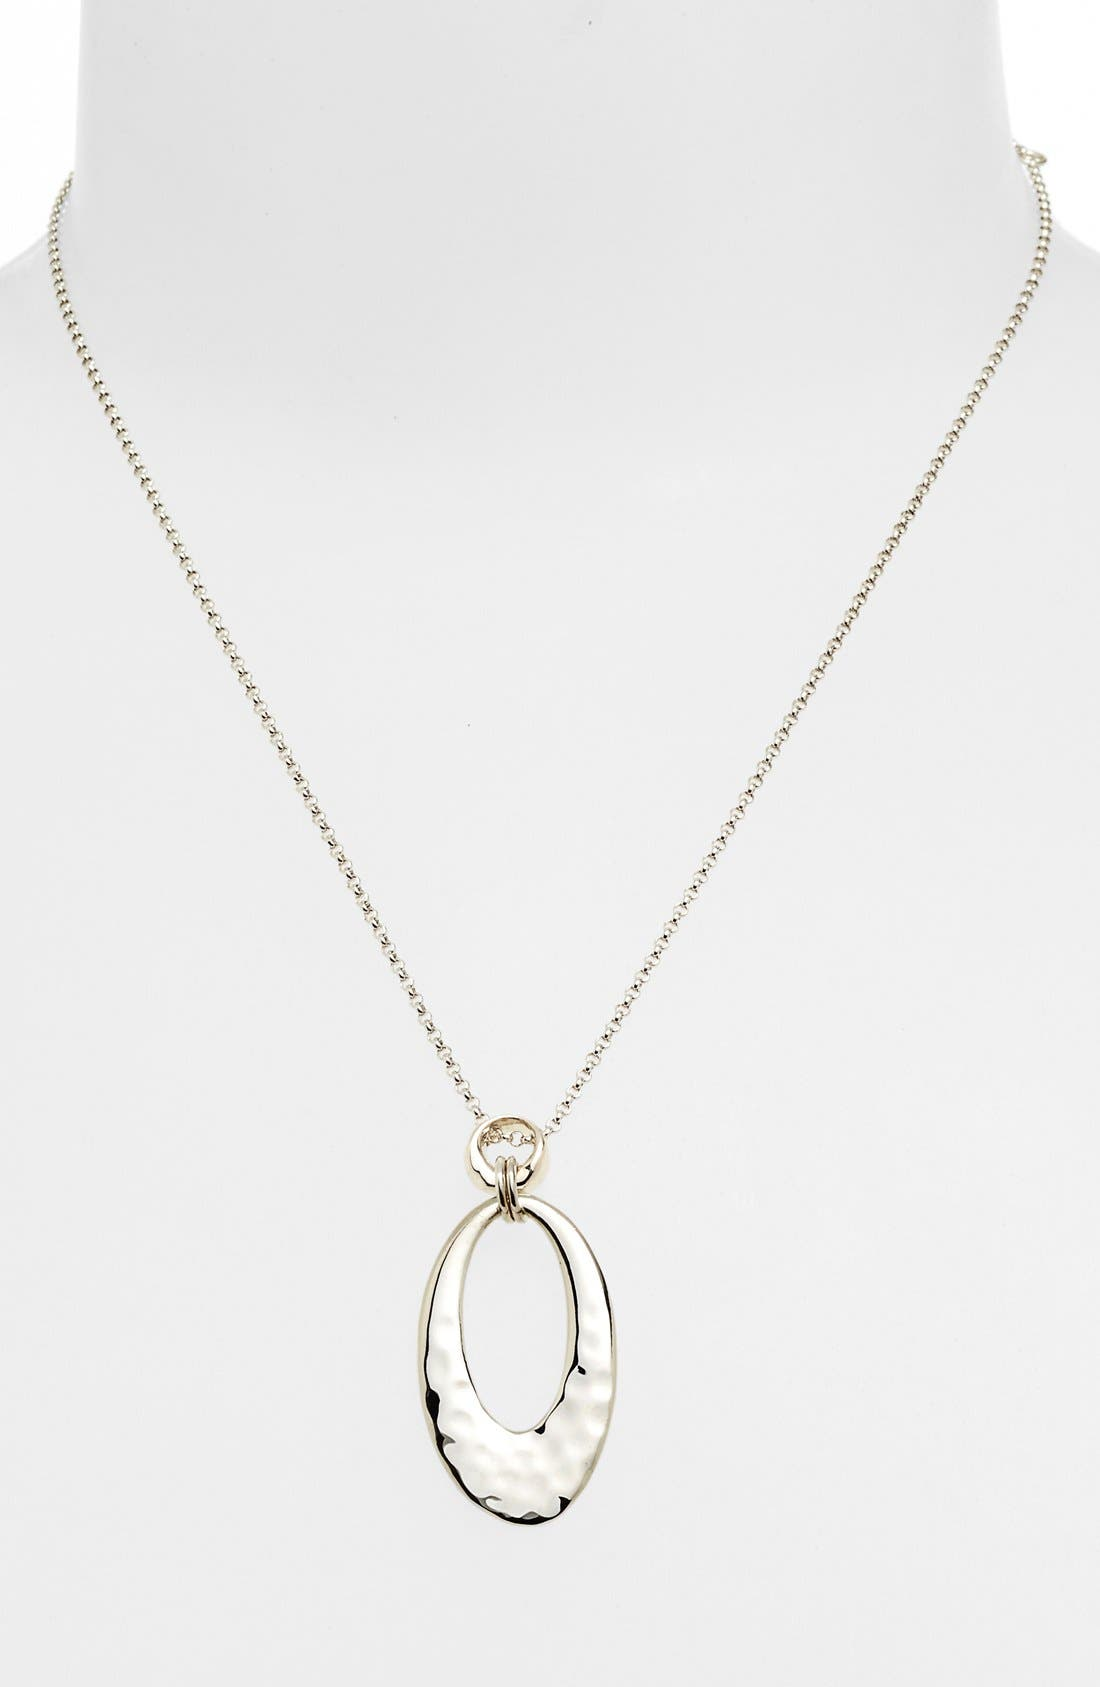 Main Image - Judith Jack 'Oahu' Hammered Oval Pendant Necklace